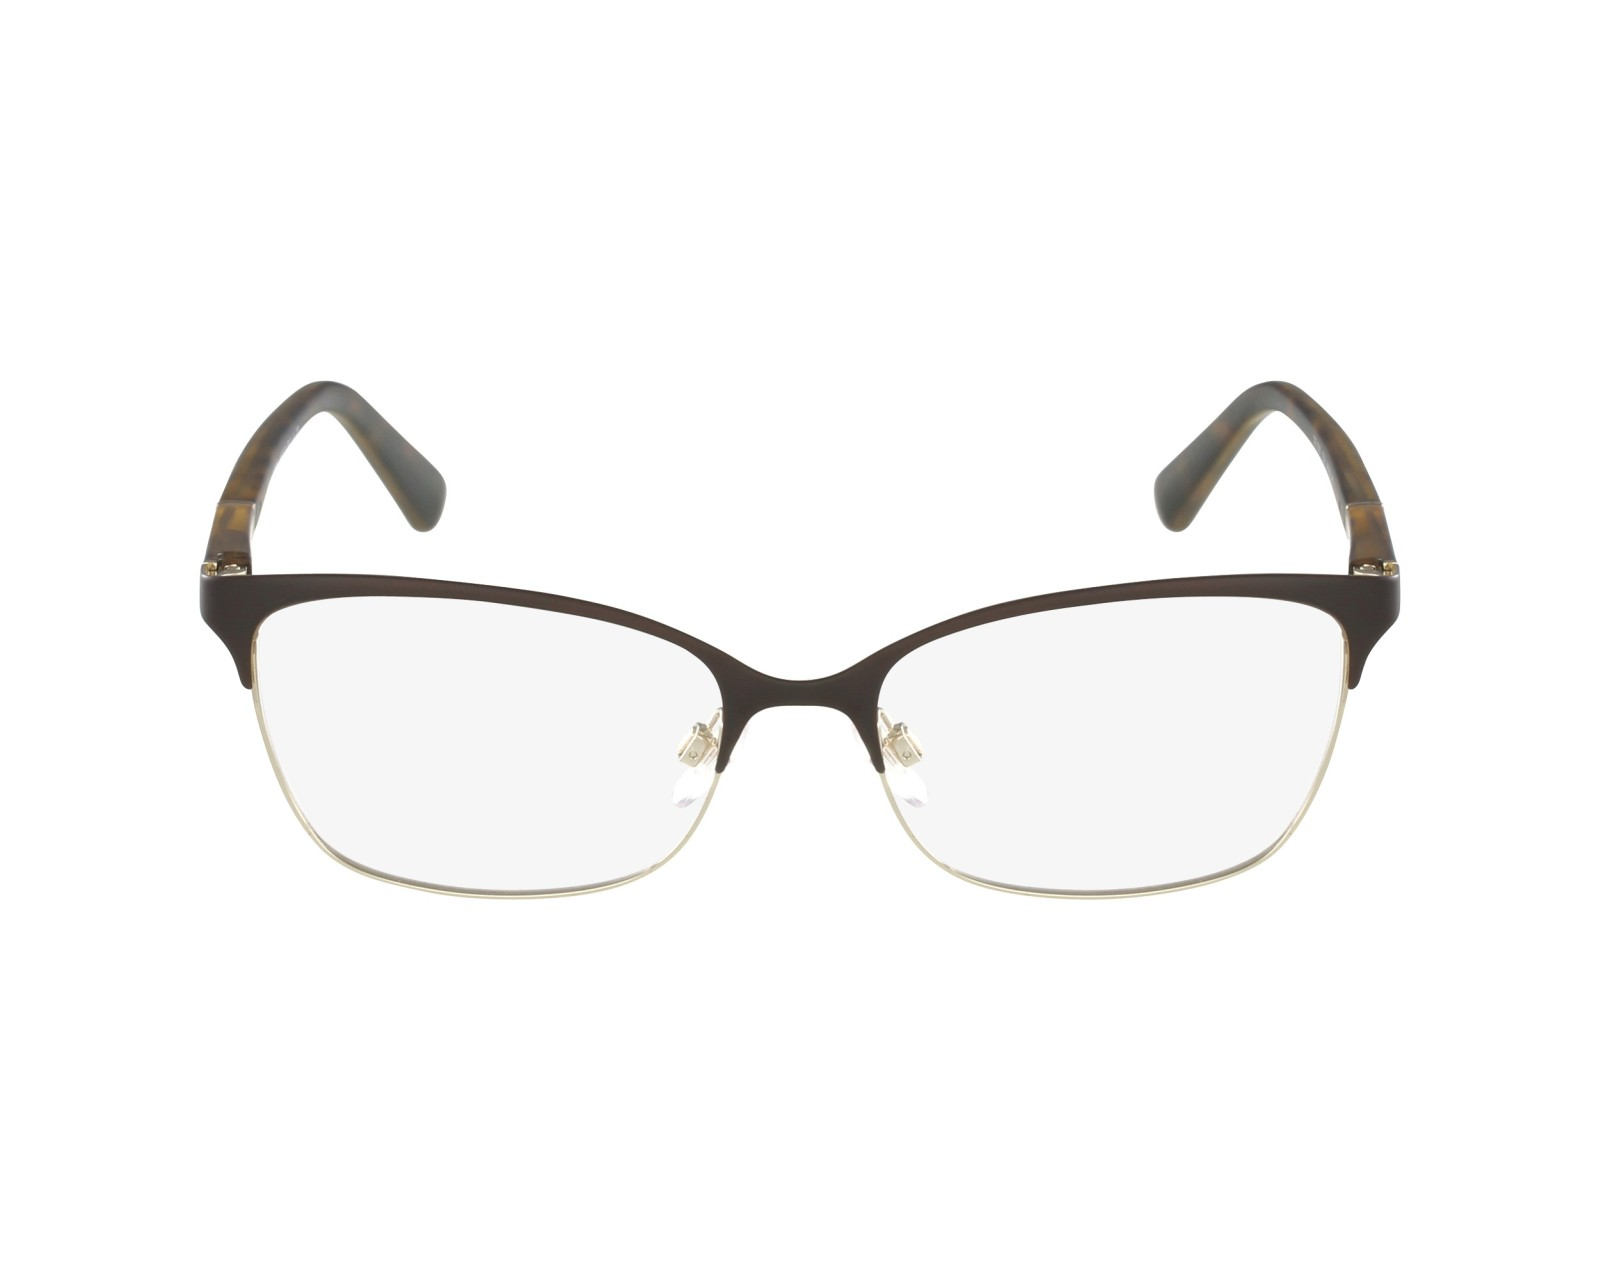 eyeglasses Dolce & Gabbana DG-1268 1254 - Brown Havana profile view